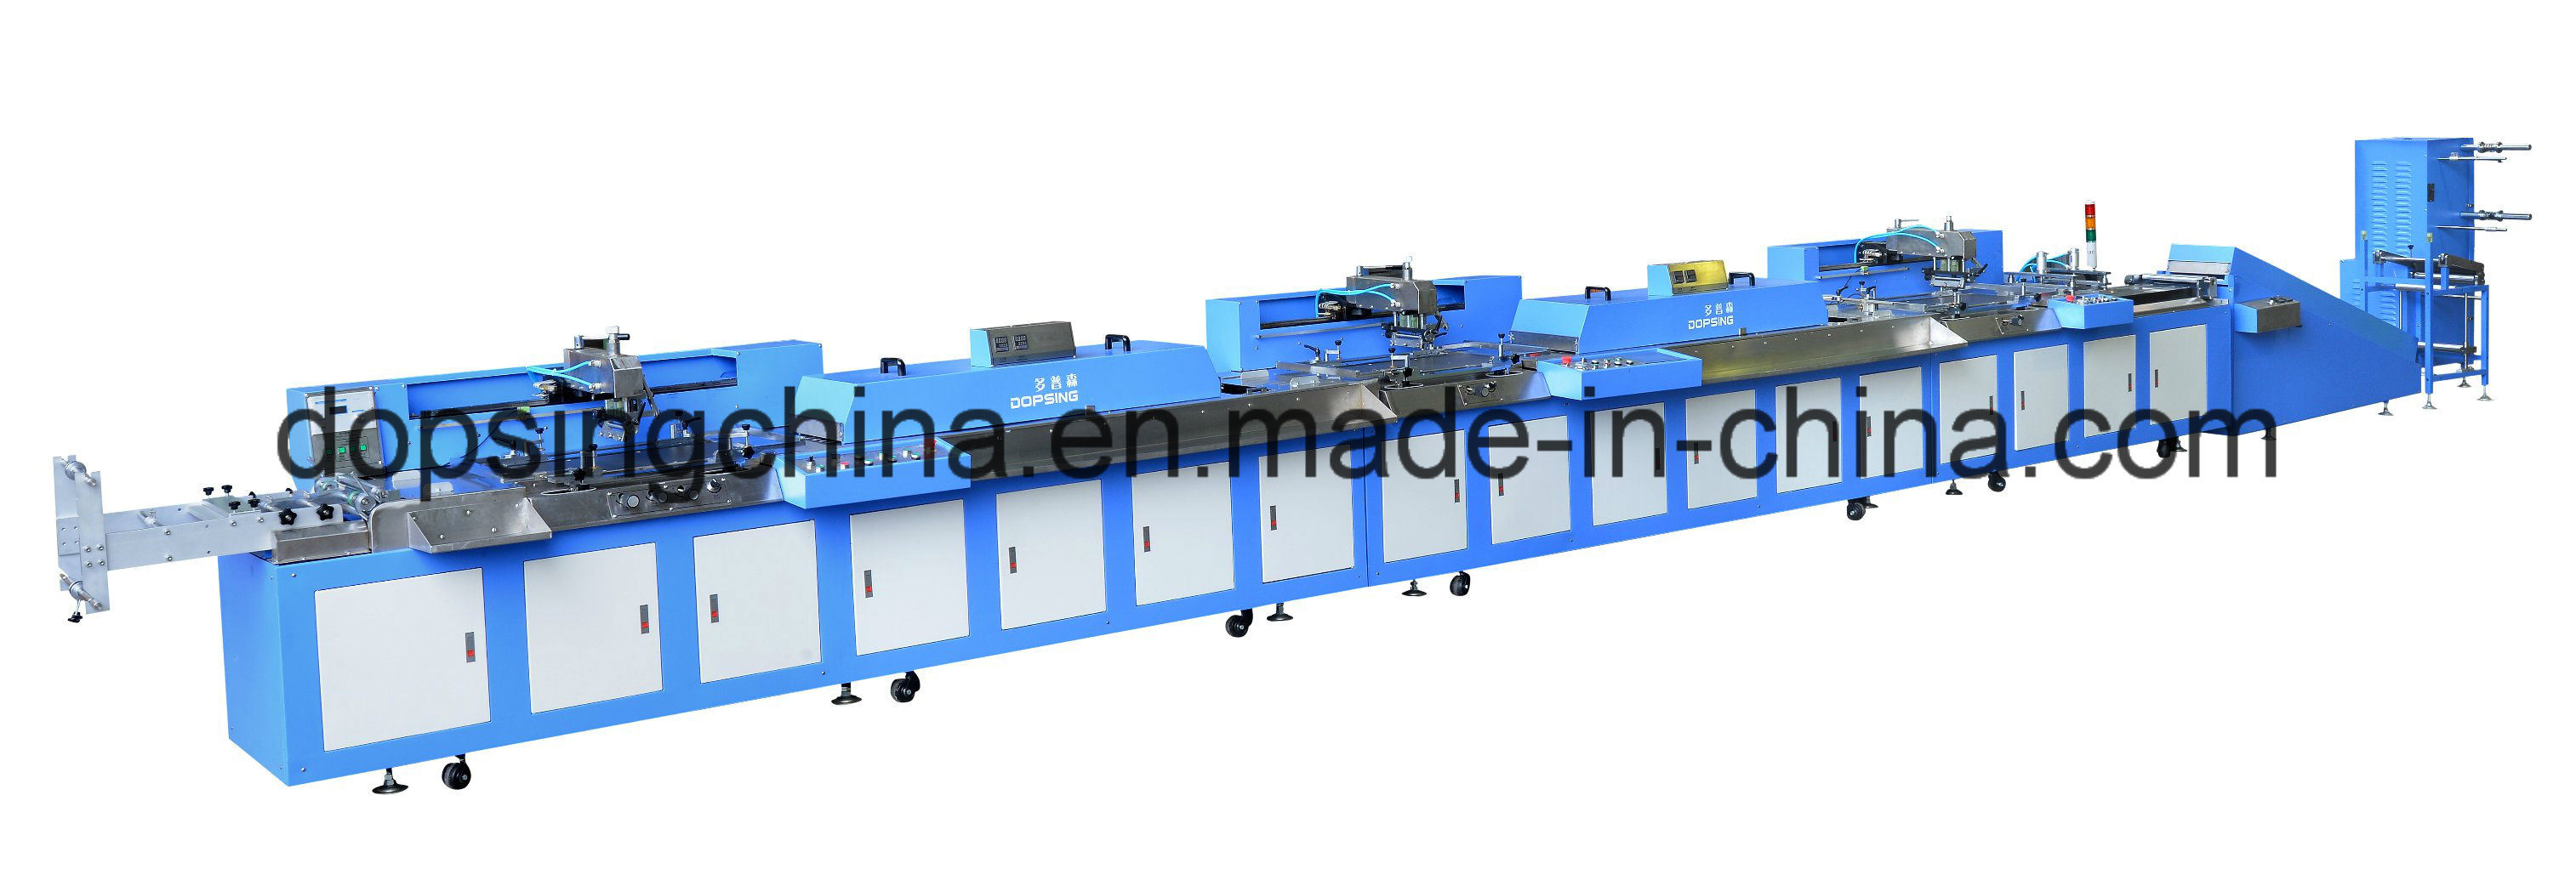 OEM manufacturer Screen Printer For Tshirt -